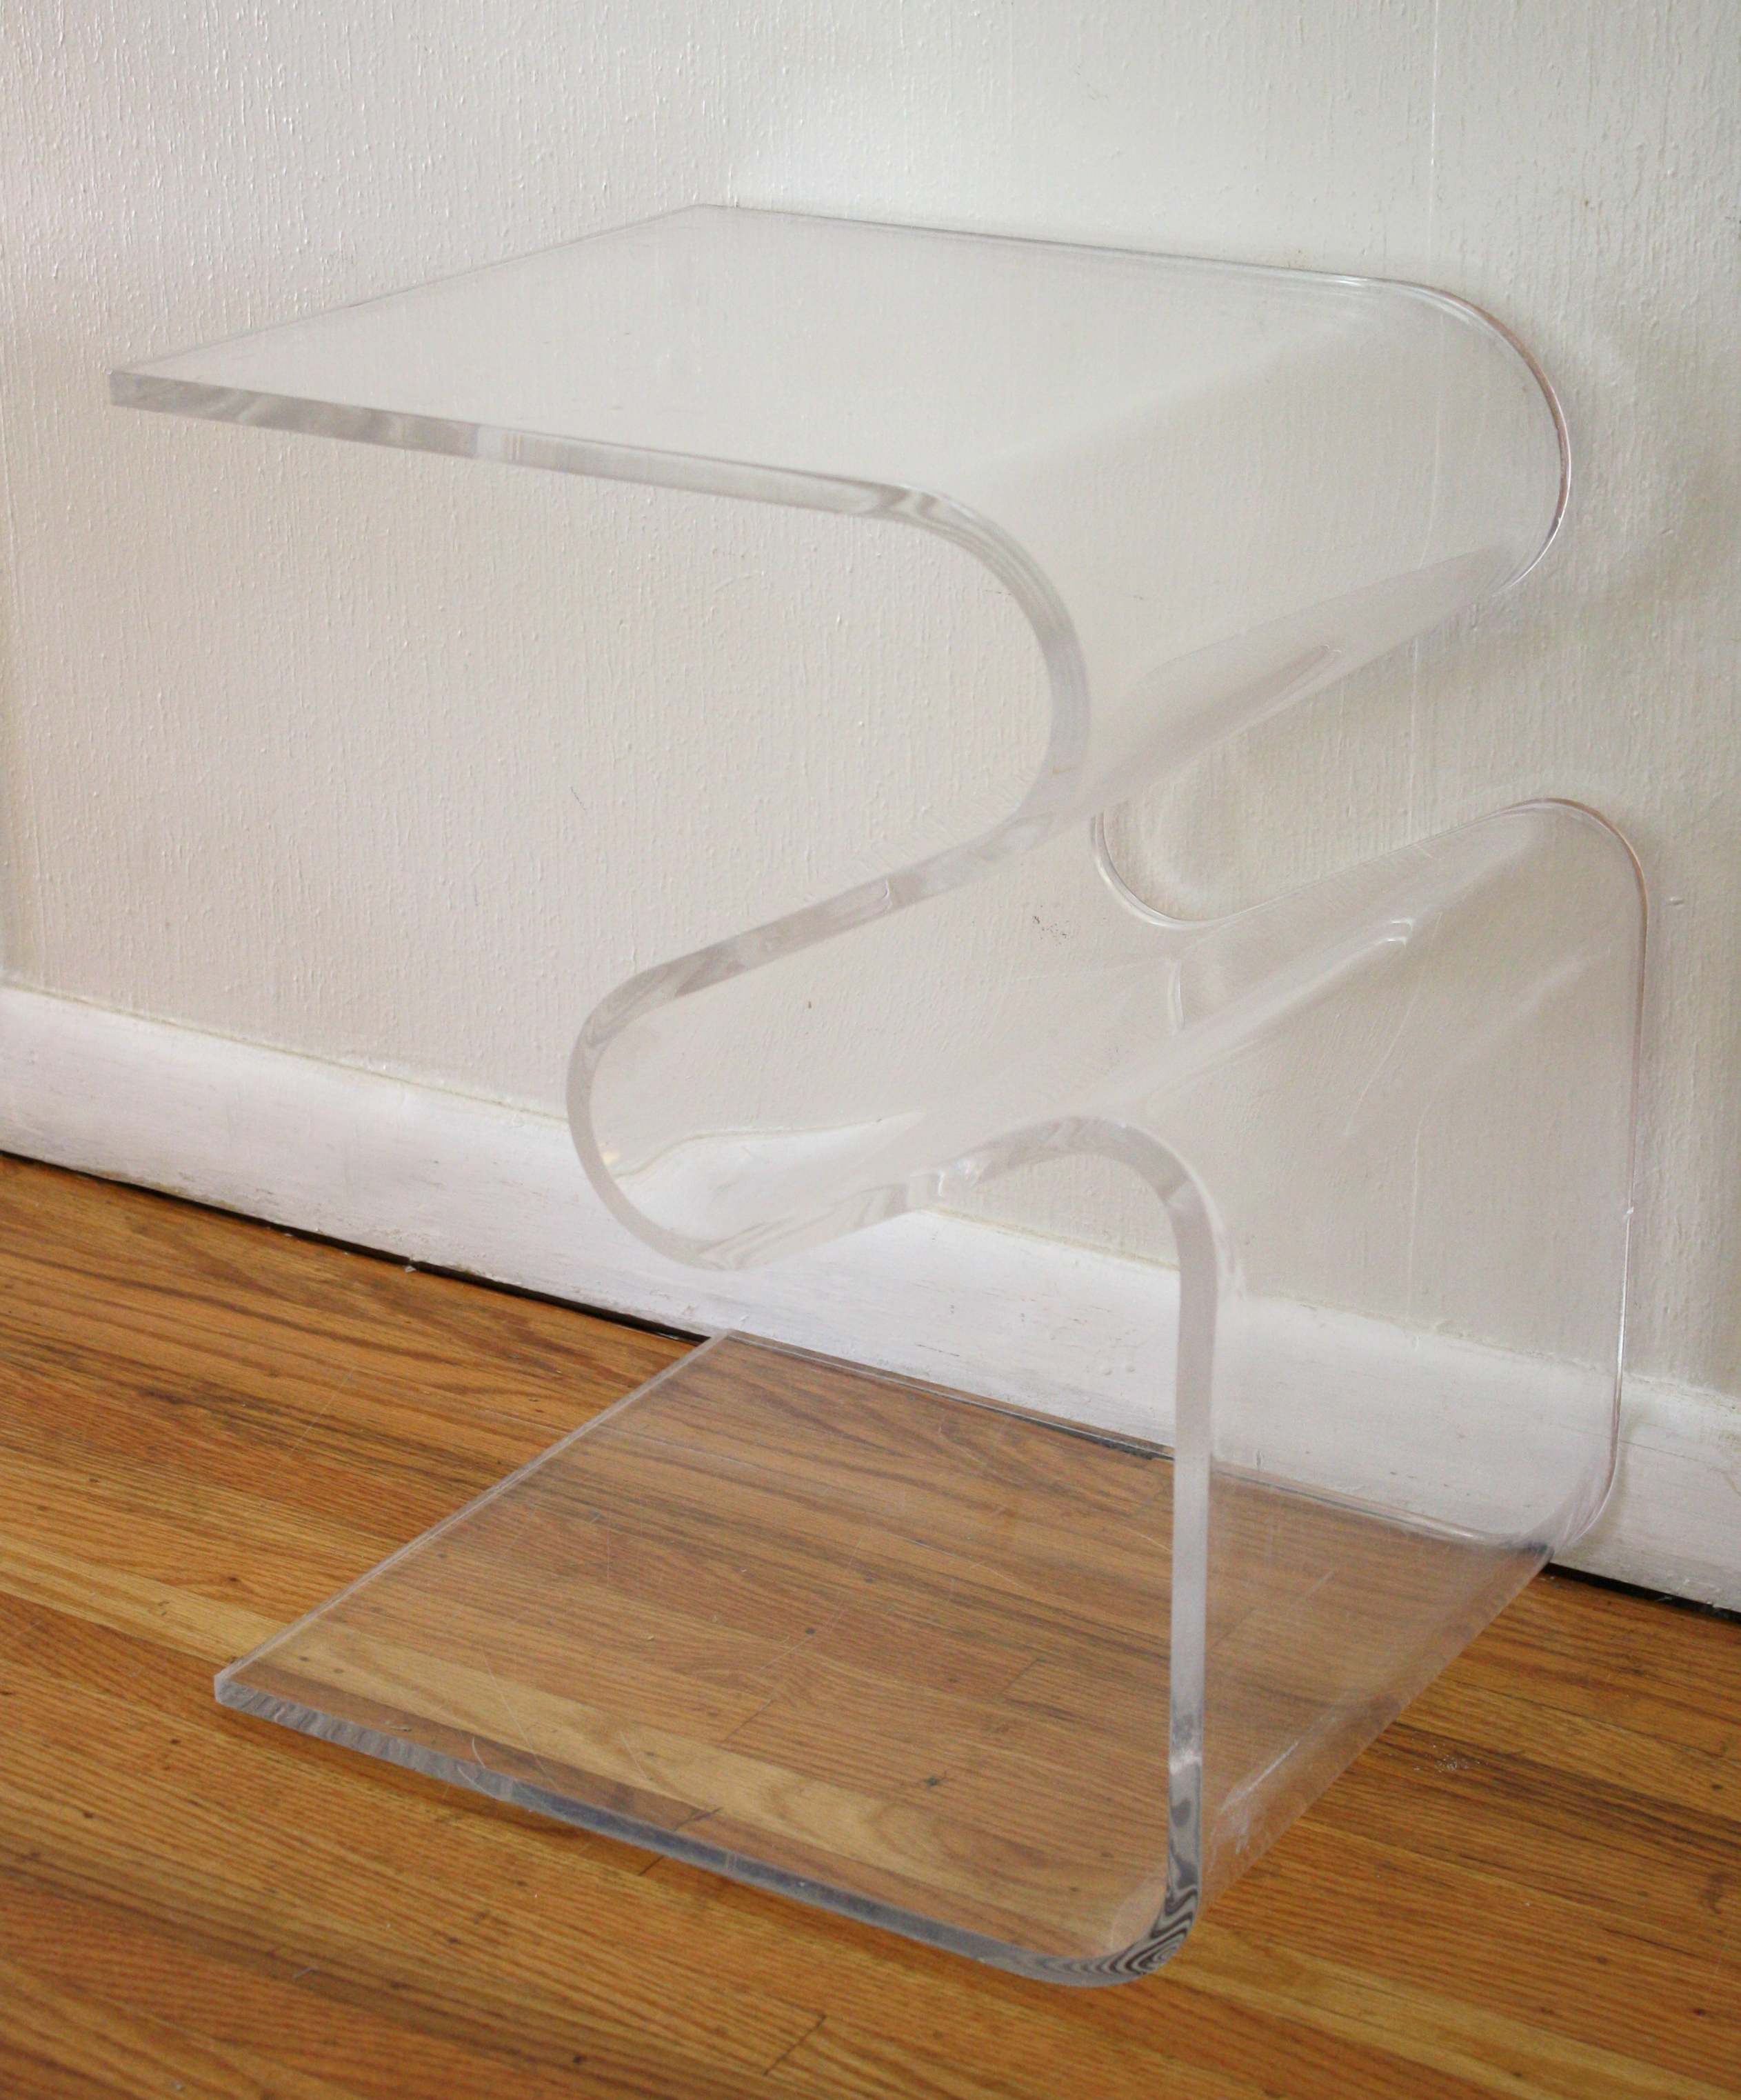 Mid Century Modern Lucite Coffee & Side Tables With Built